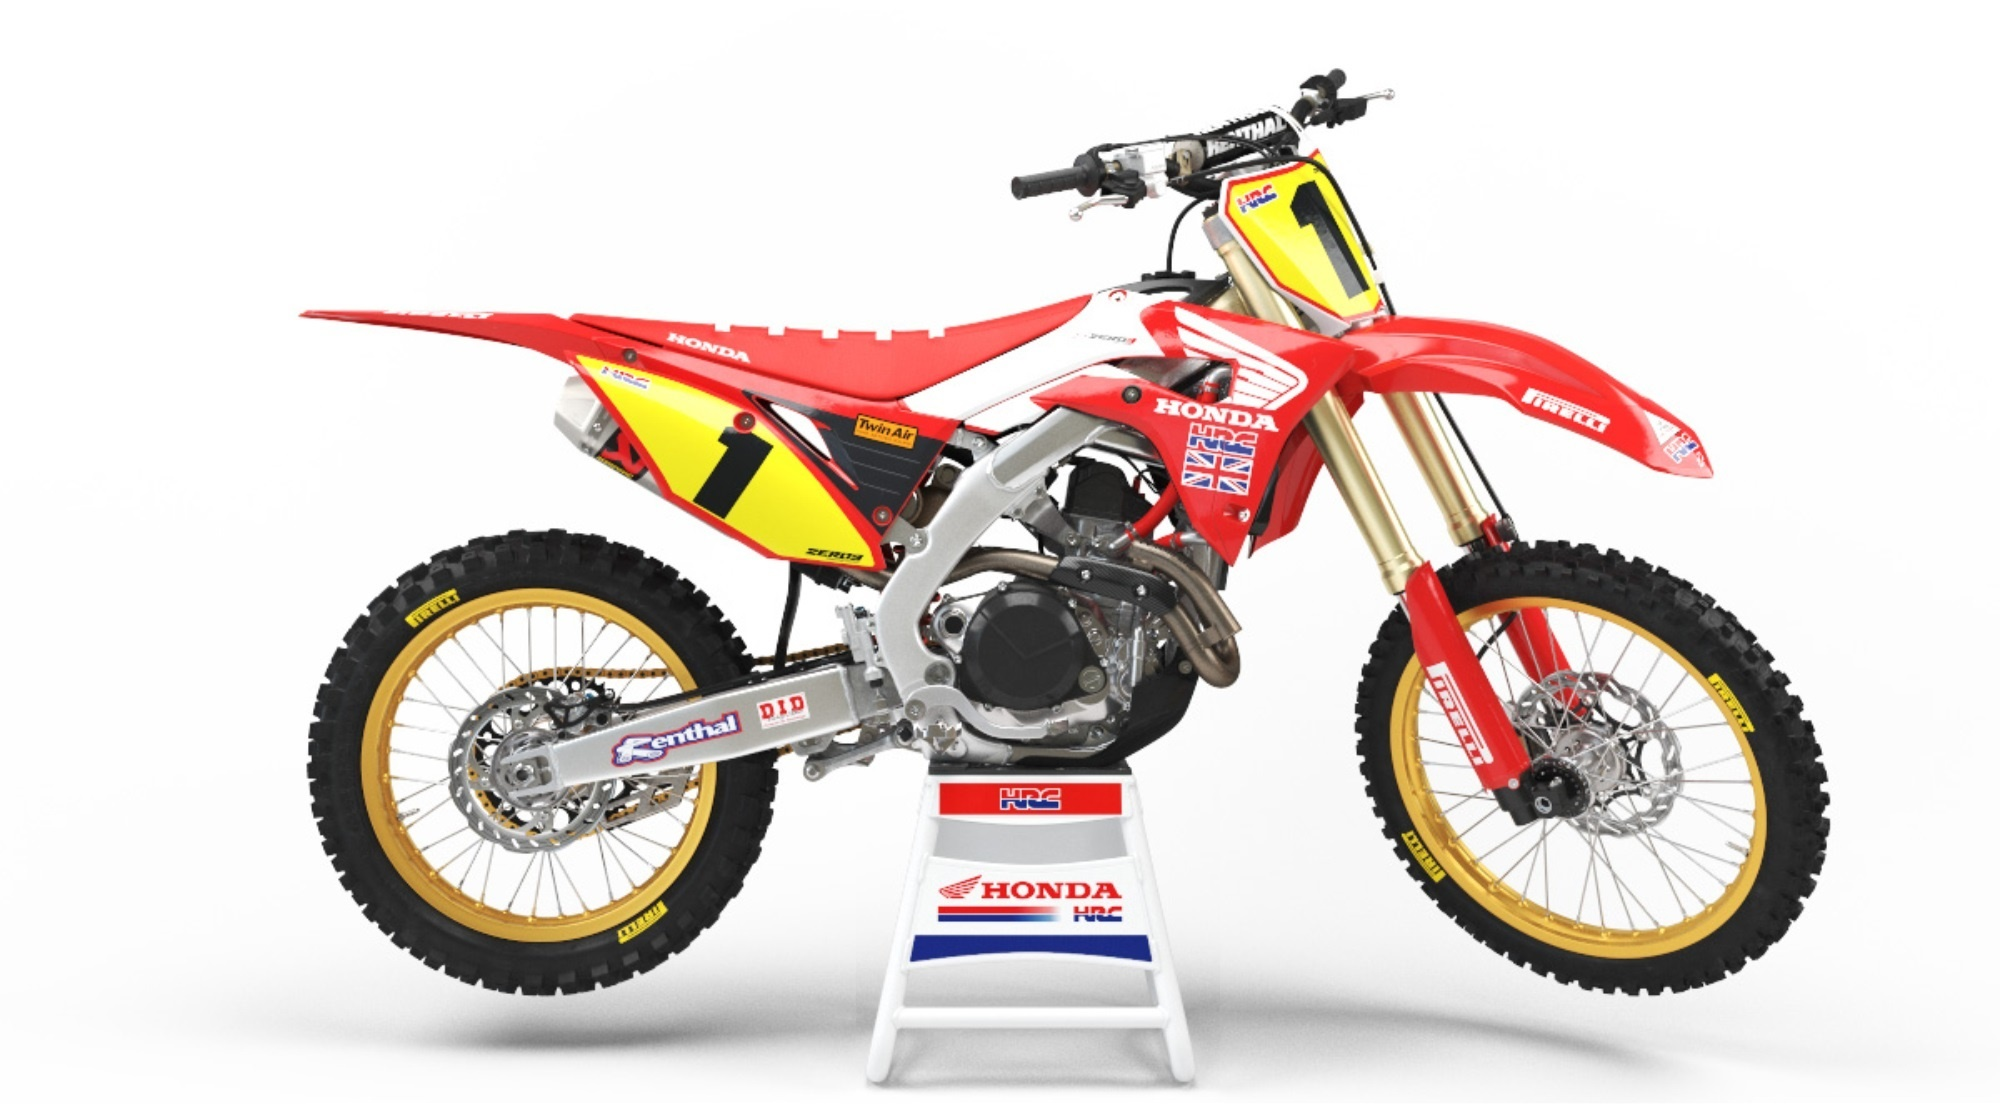 CRF450R Dave Thorpe Special Edition